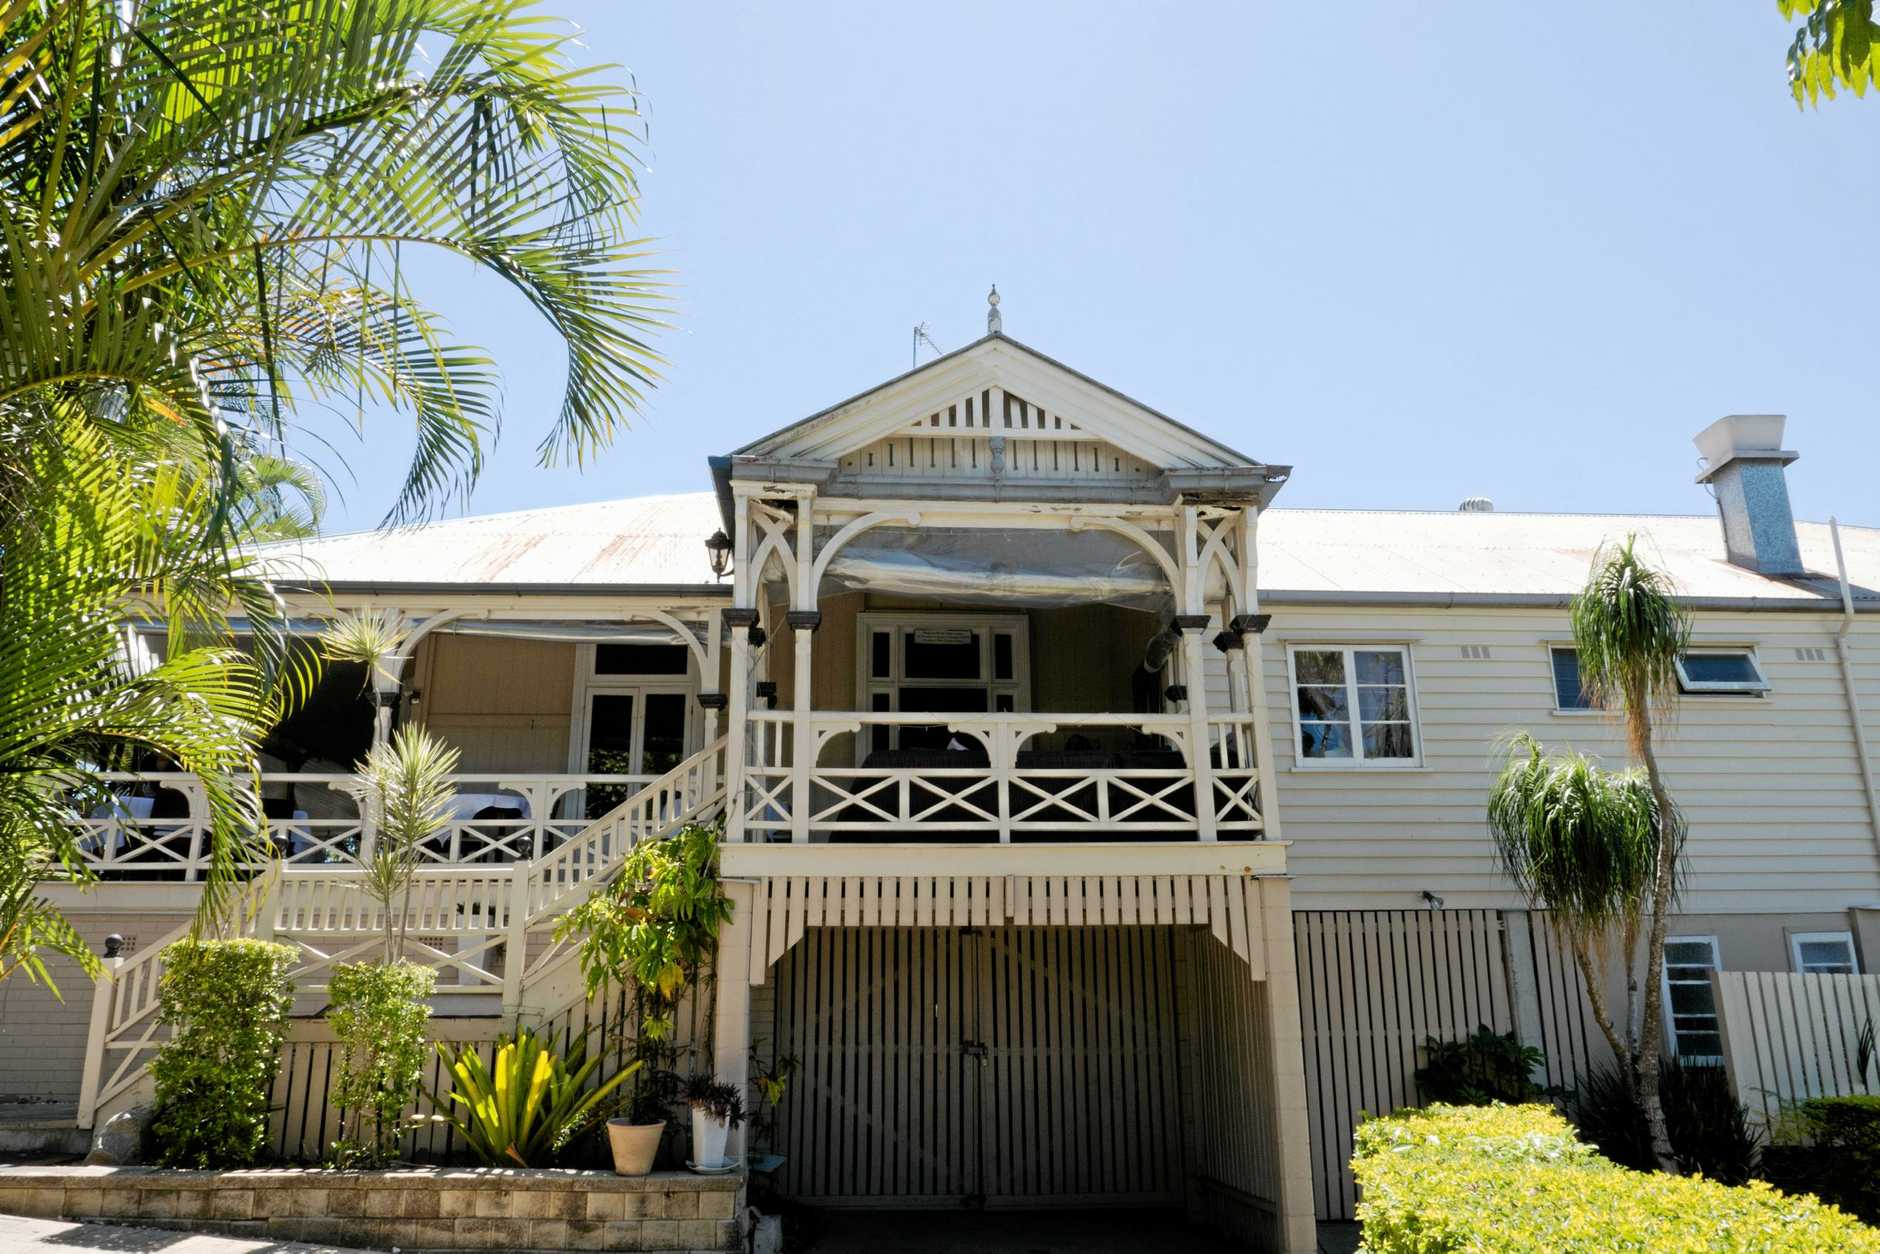 Kingston House has its own ghost stories and colourful history.